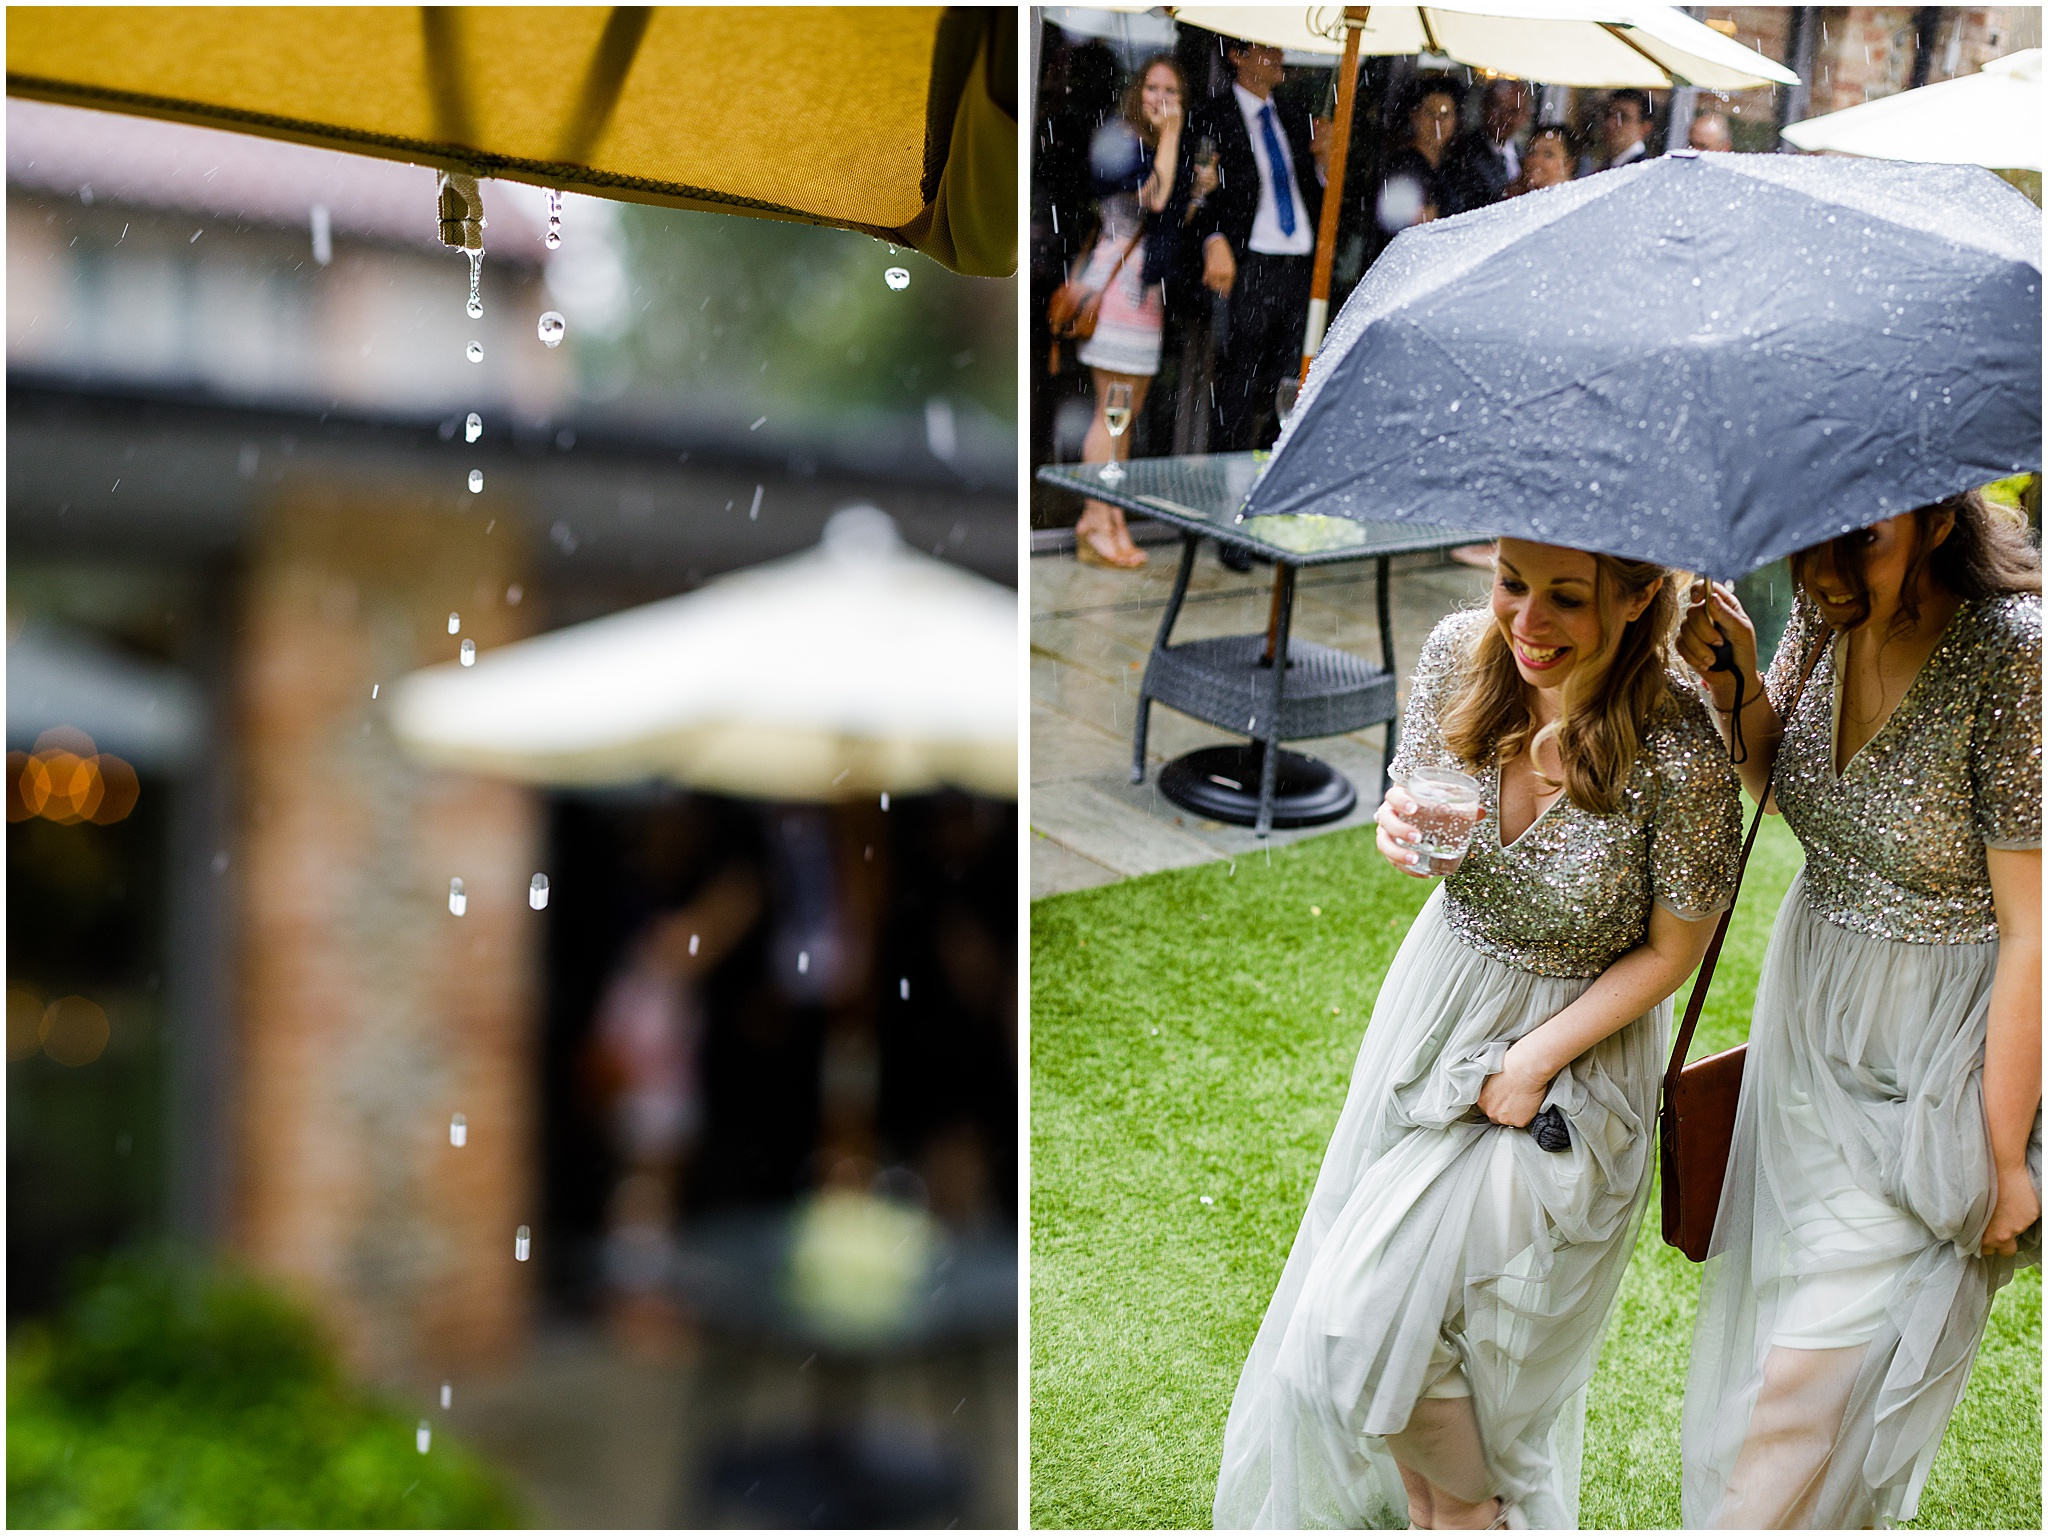 rainy wedding day idea norfolk wedding east anglia wedding photographer